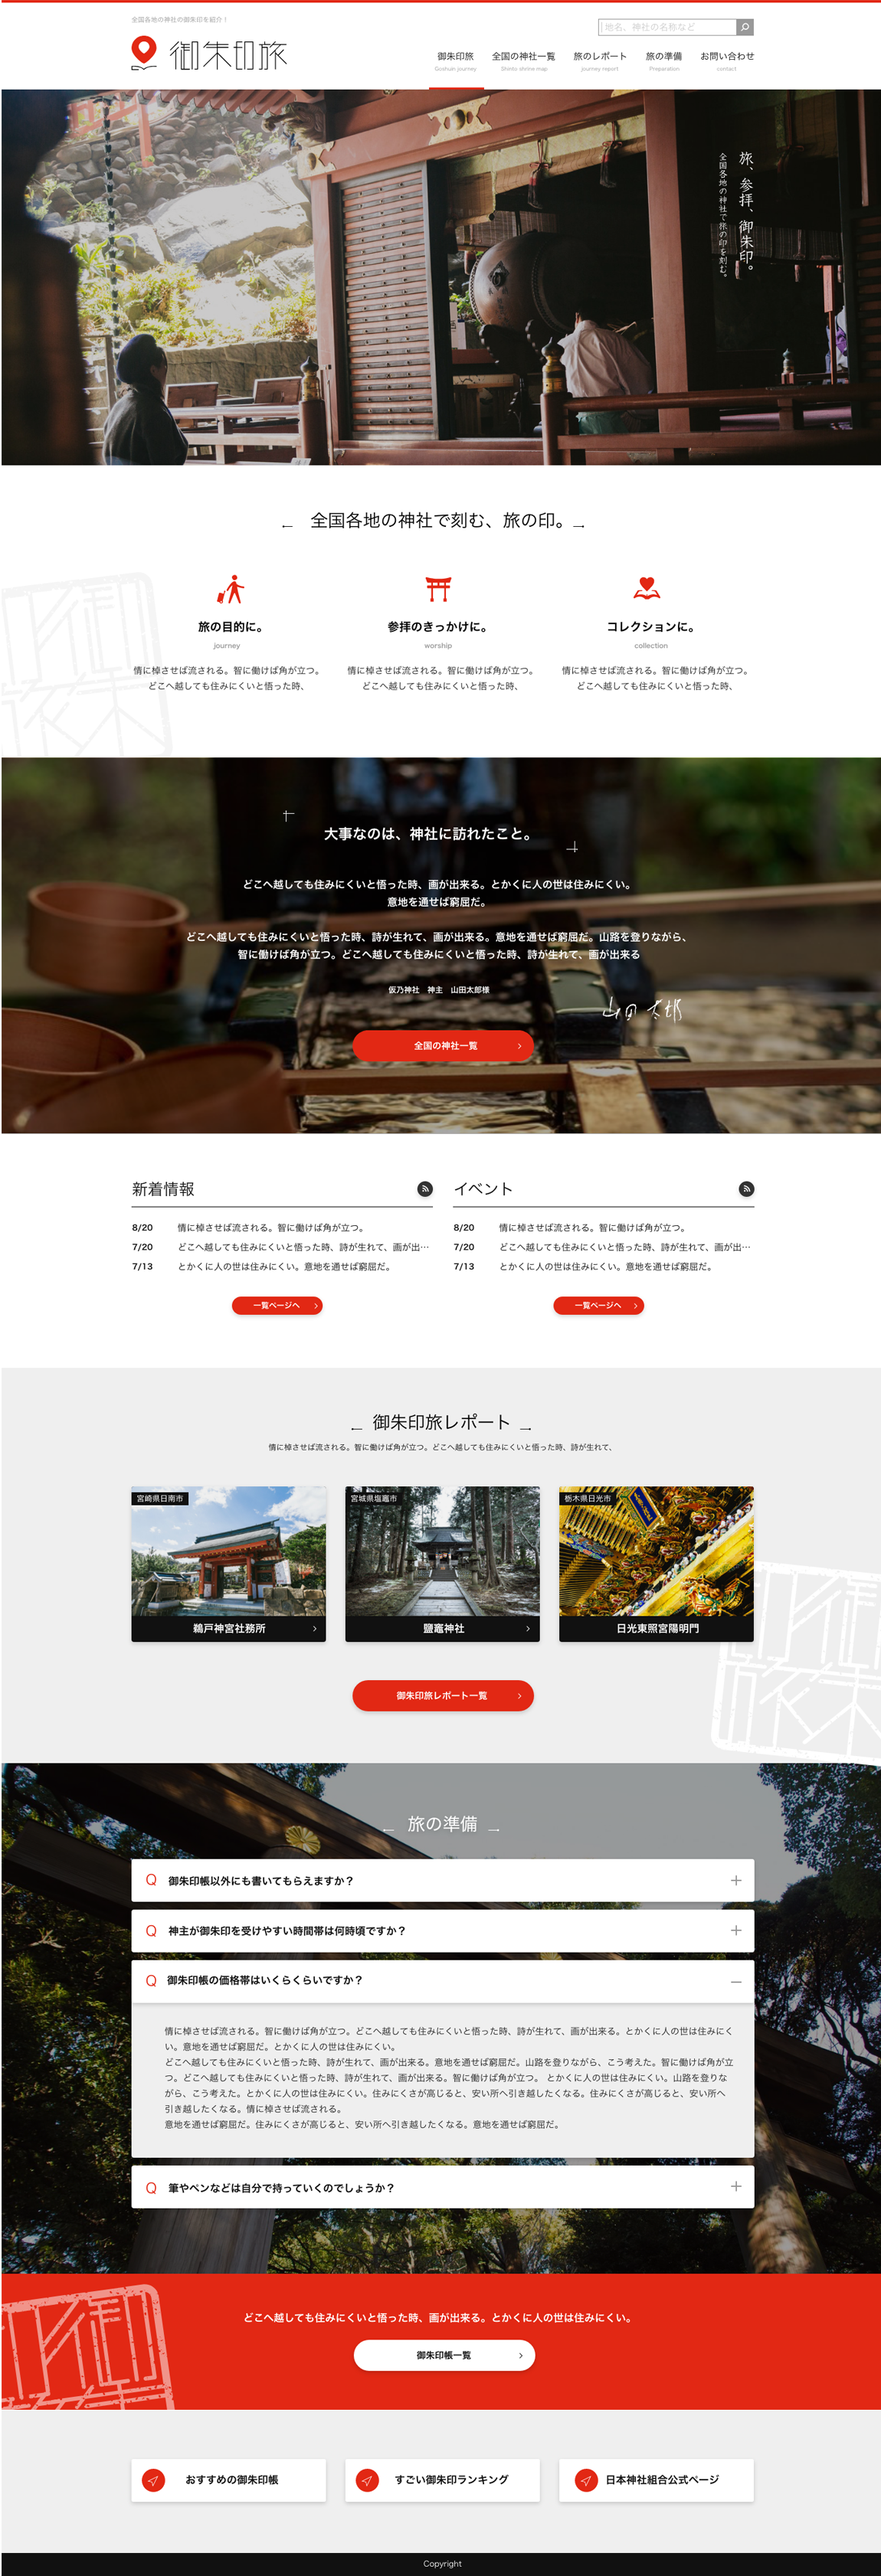 Web design sample 02